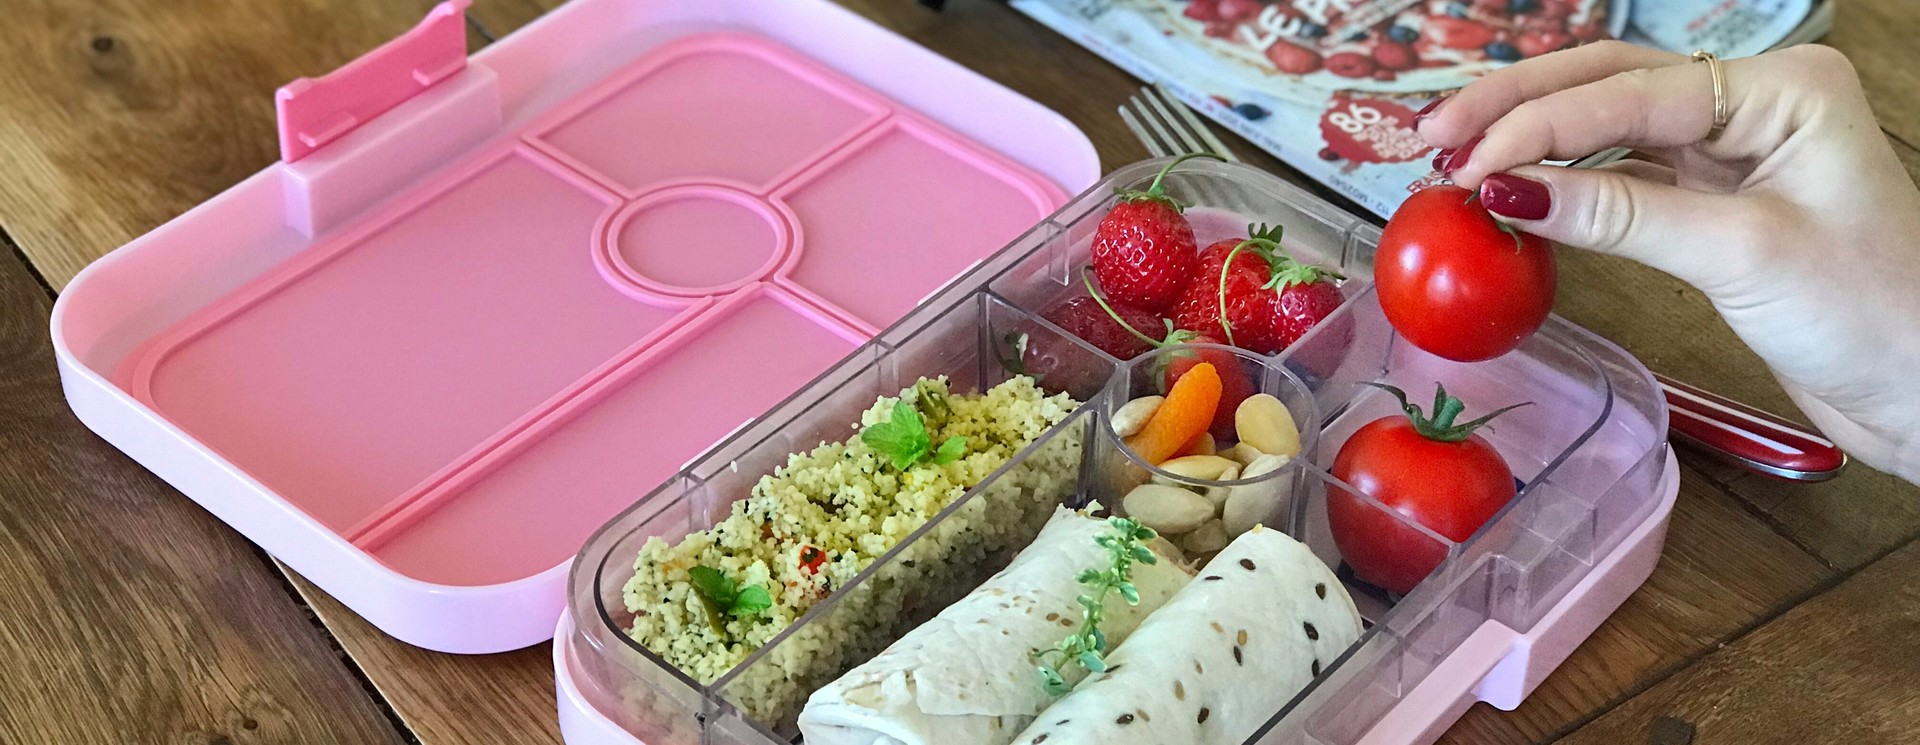 Yumbox Tapas XL lunchtrommel